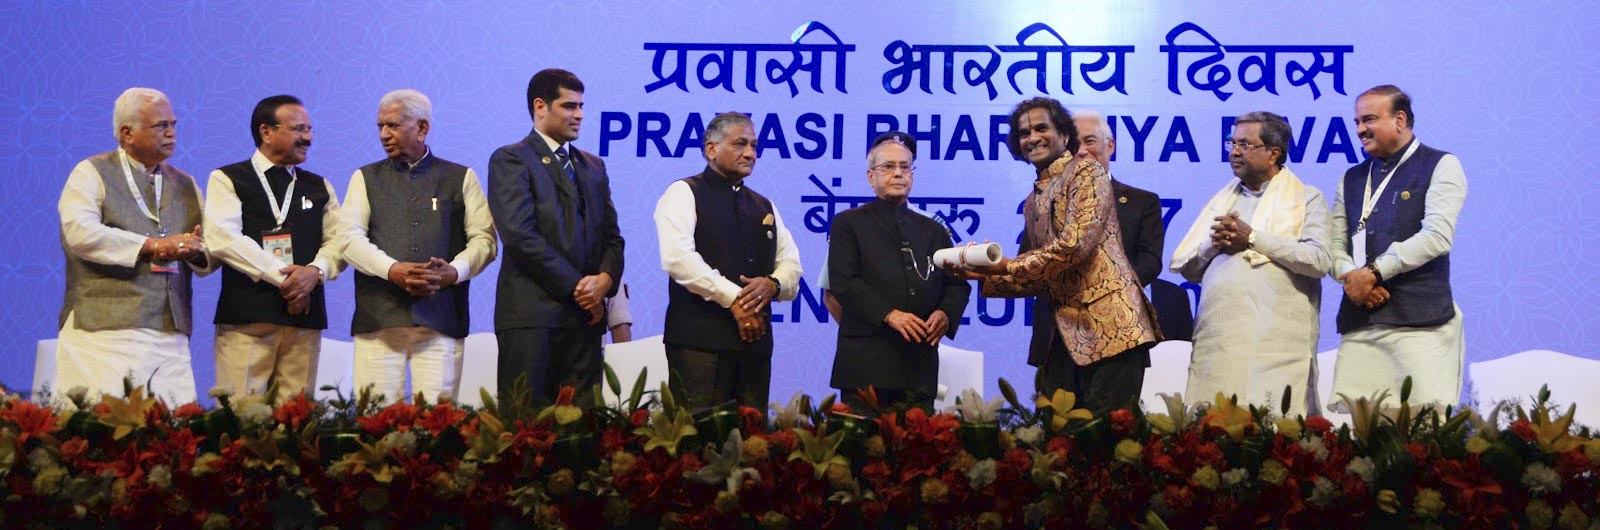 President conferred the Pravasi Bharatiya Samman Awards, at the PBD 2017 convention, in Bengaluru, Karnataka on January 09, 2017